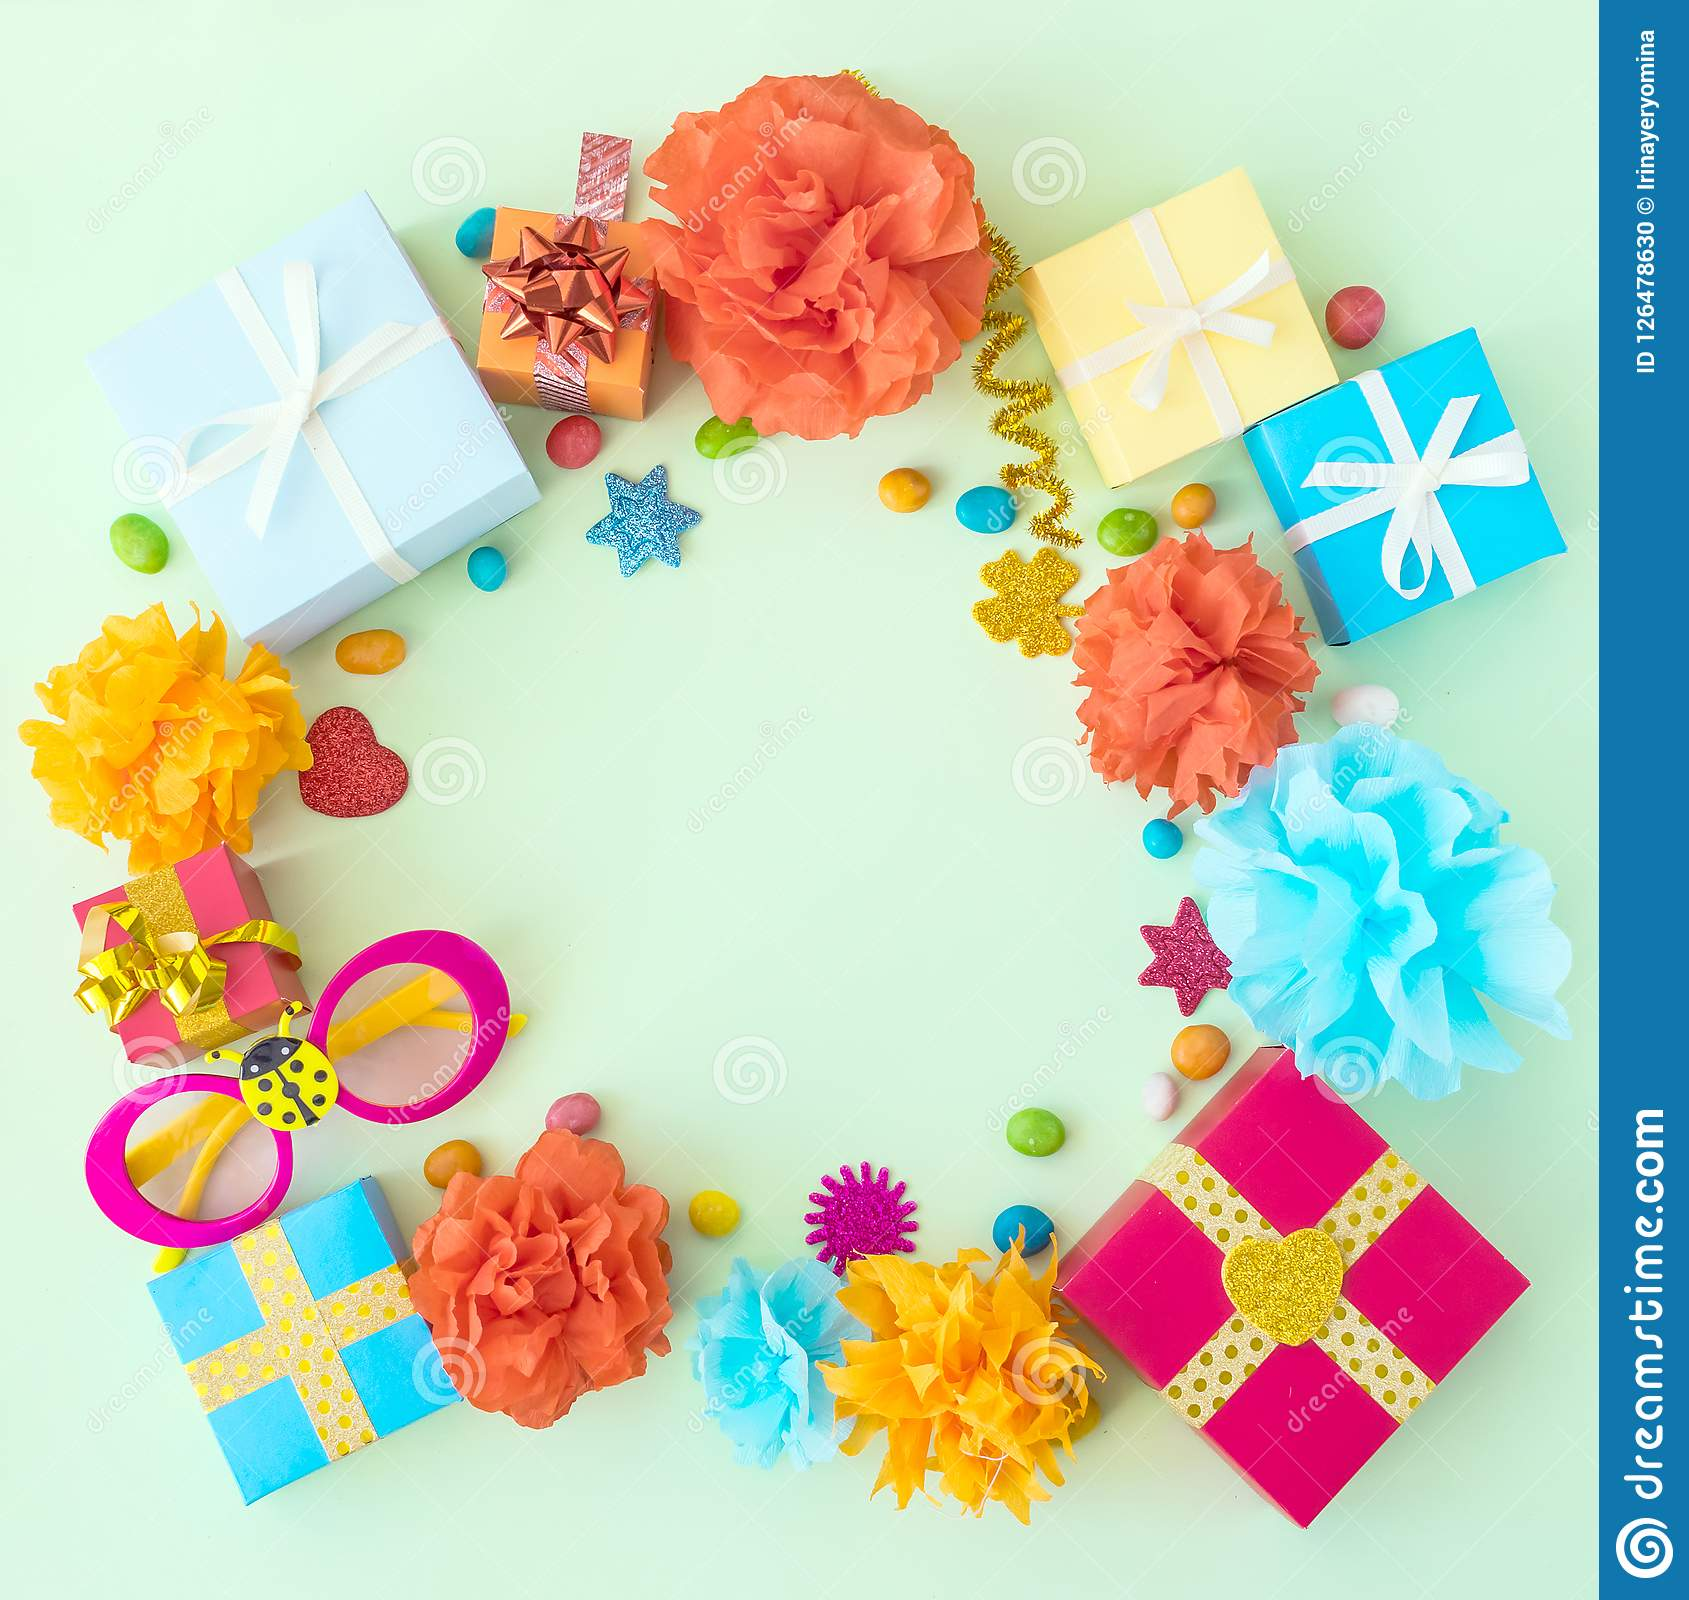 Birthday Party Background With Festive Decor Carnival Glasses